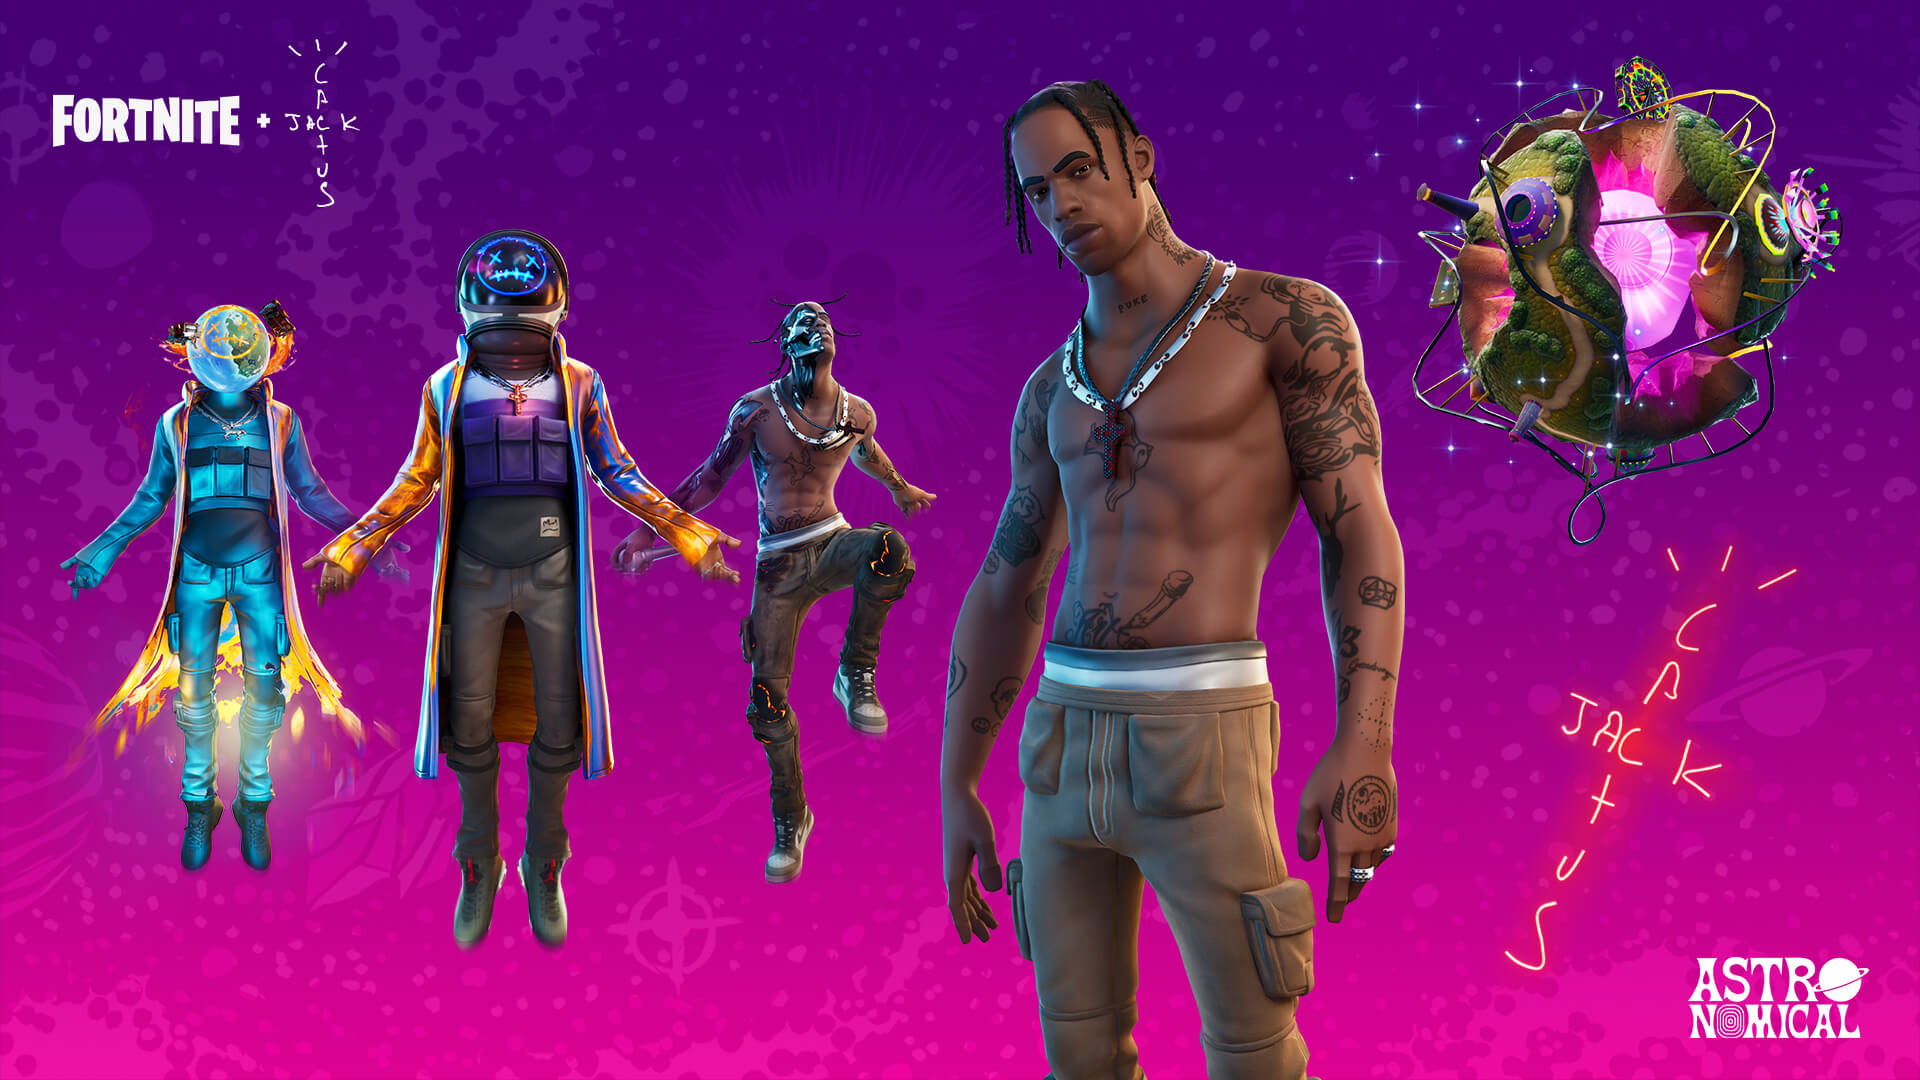 travis-scott-fortnite-astronomical